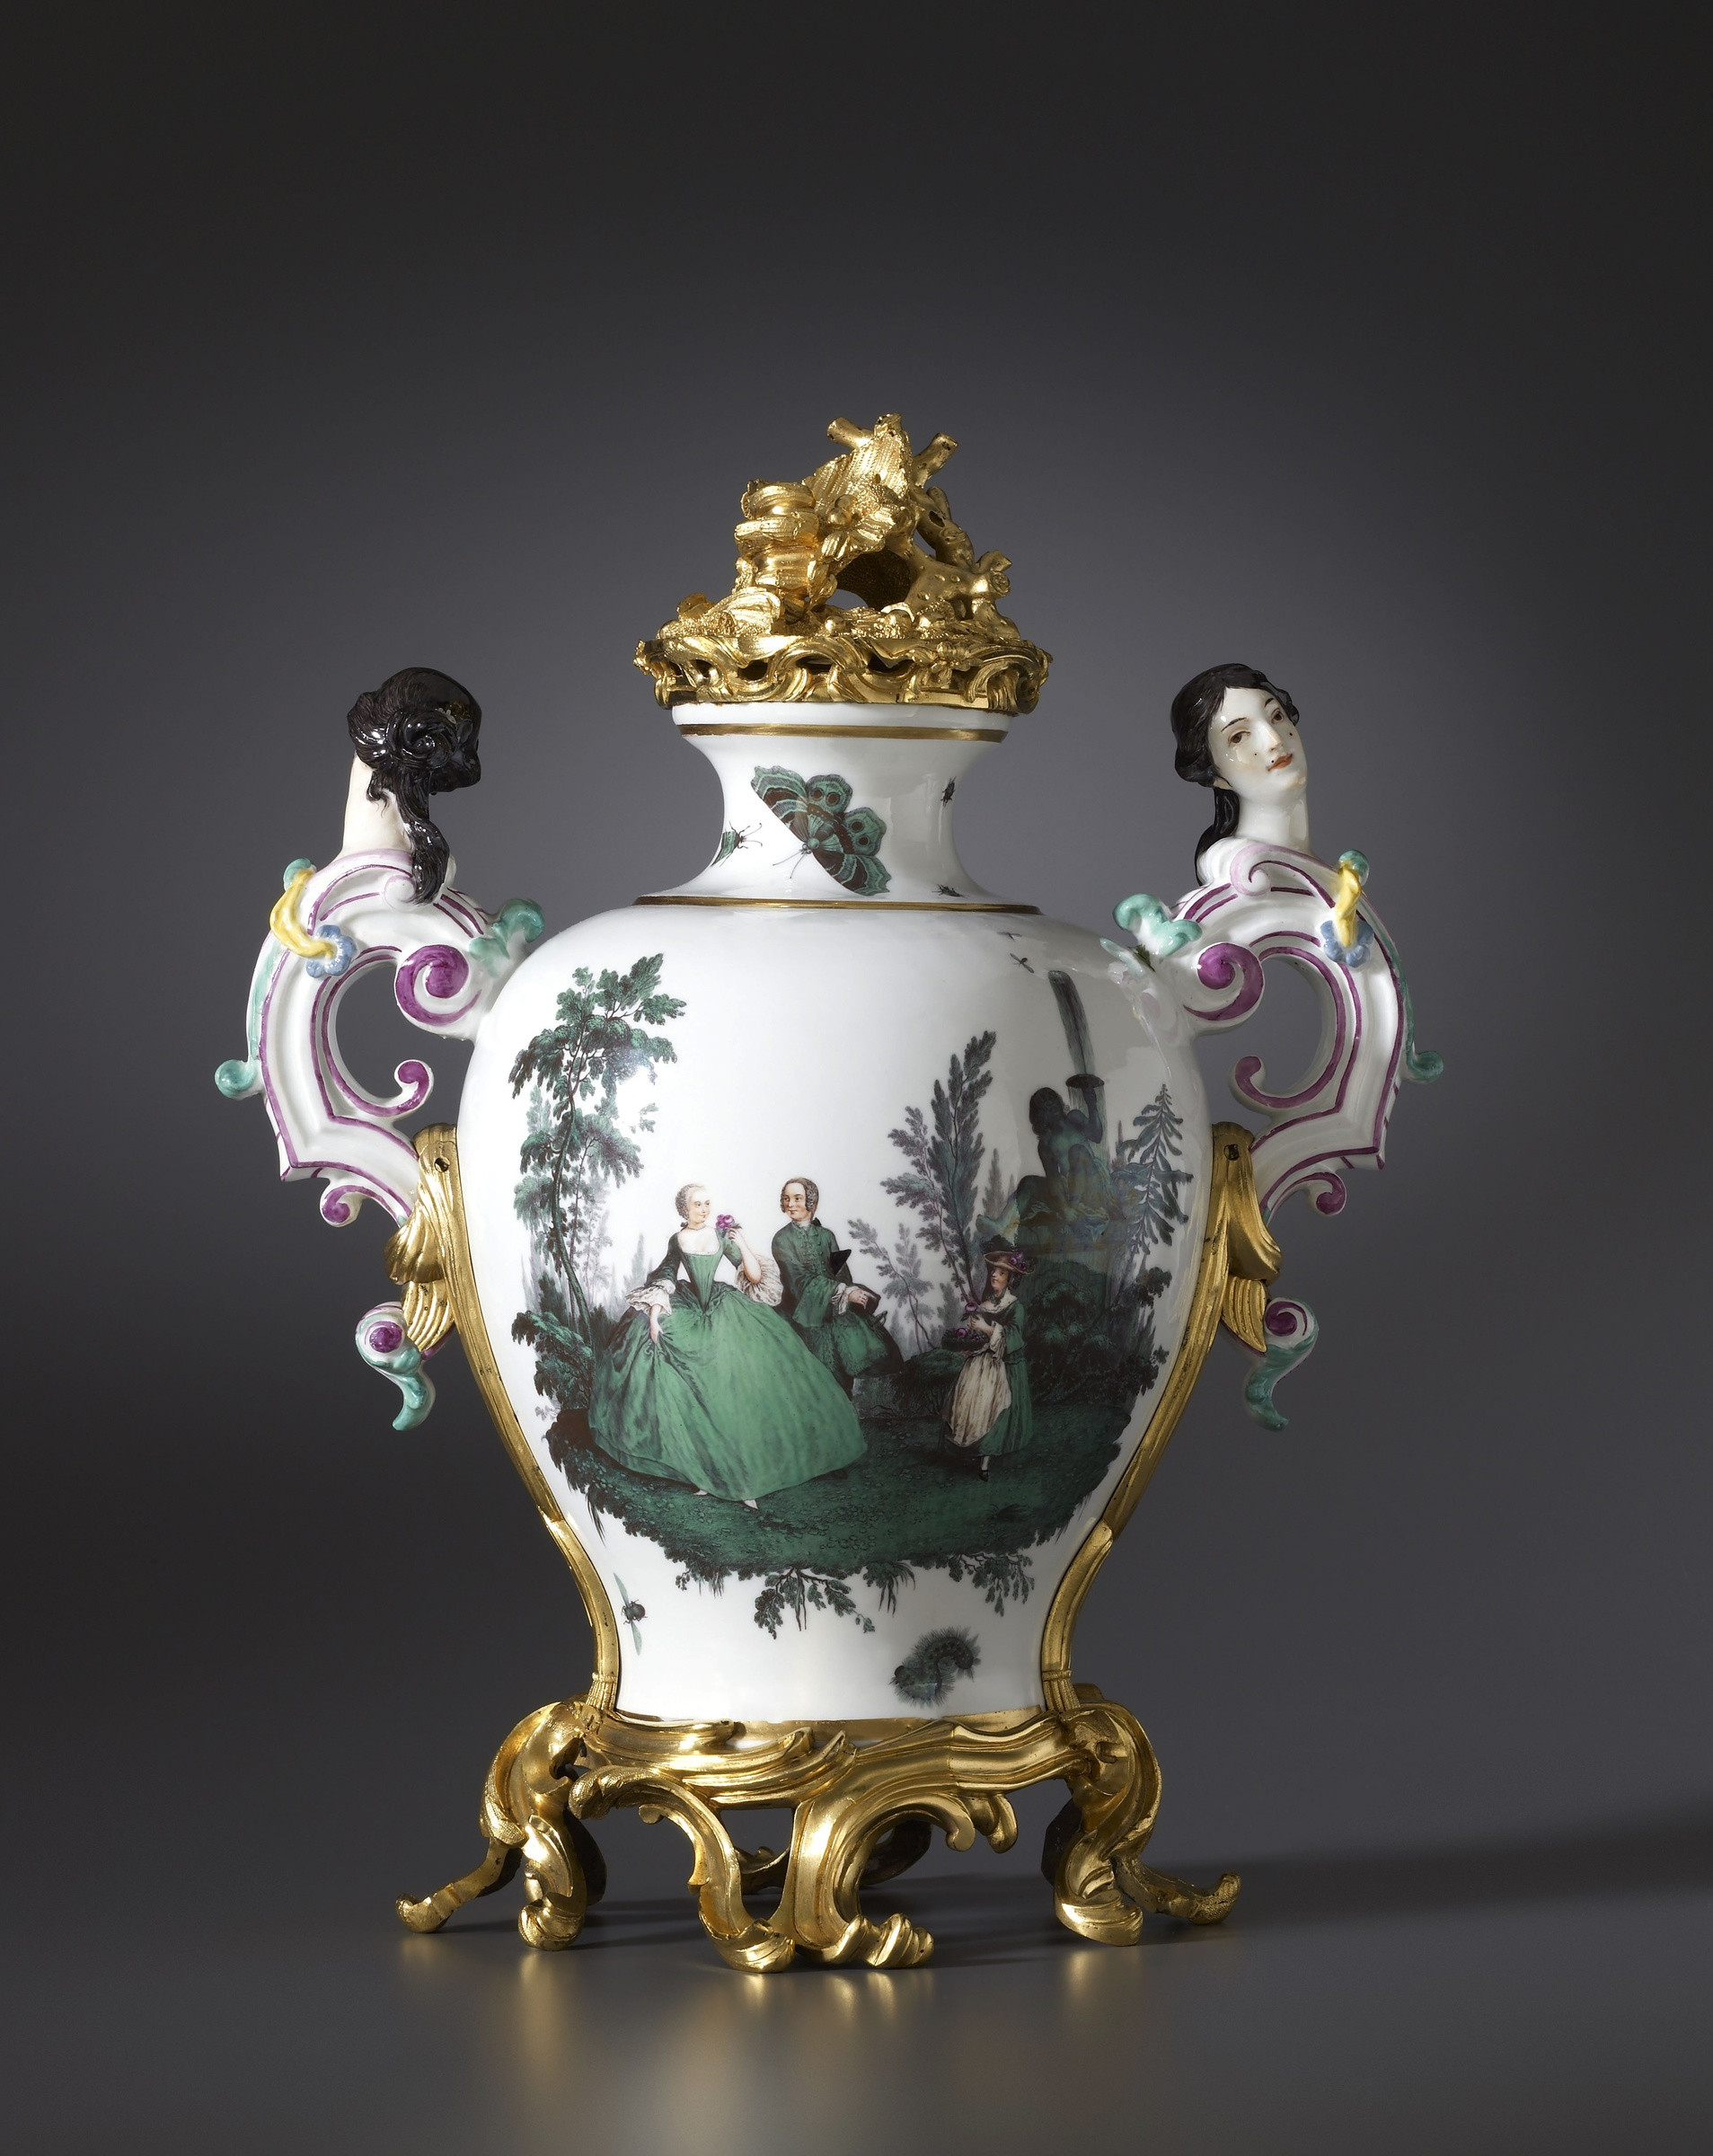 3d Puzzle Vase Of Meissen A Louis Xv Vase by Meissen Almost Certainly Modelled by Throughout A Louis Xv Vase by Meissen Almost Certainly Modelled by Johann Joachim Ka¤ndler